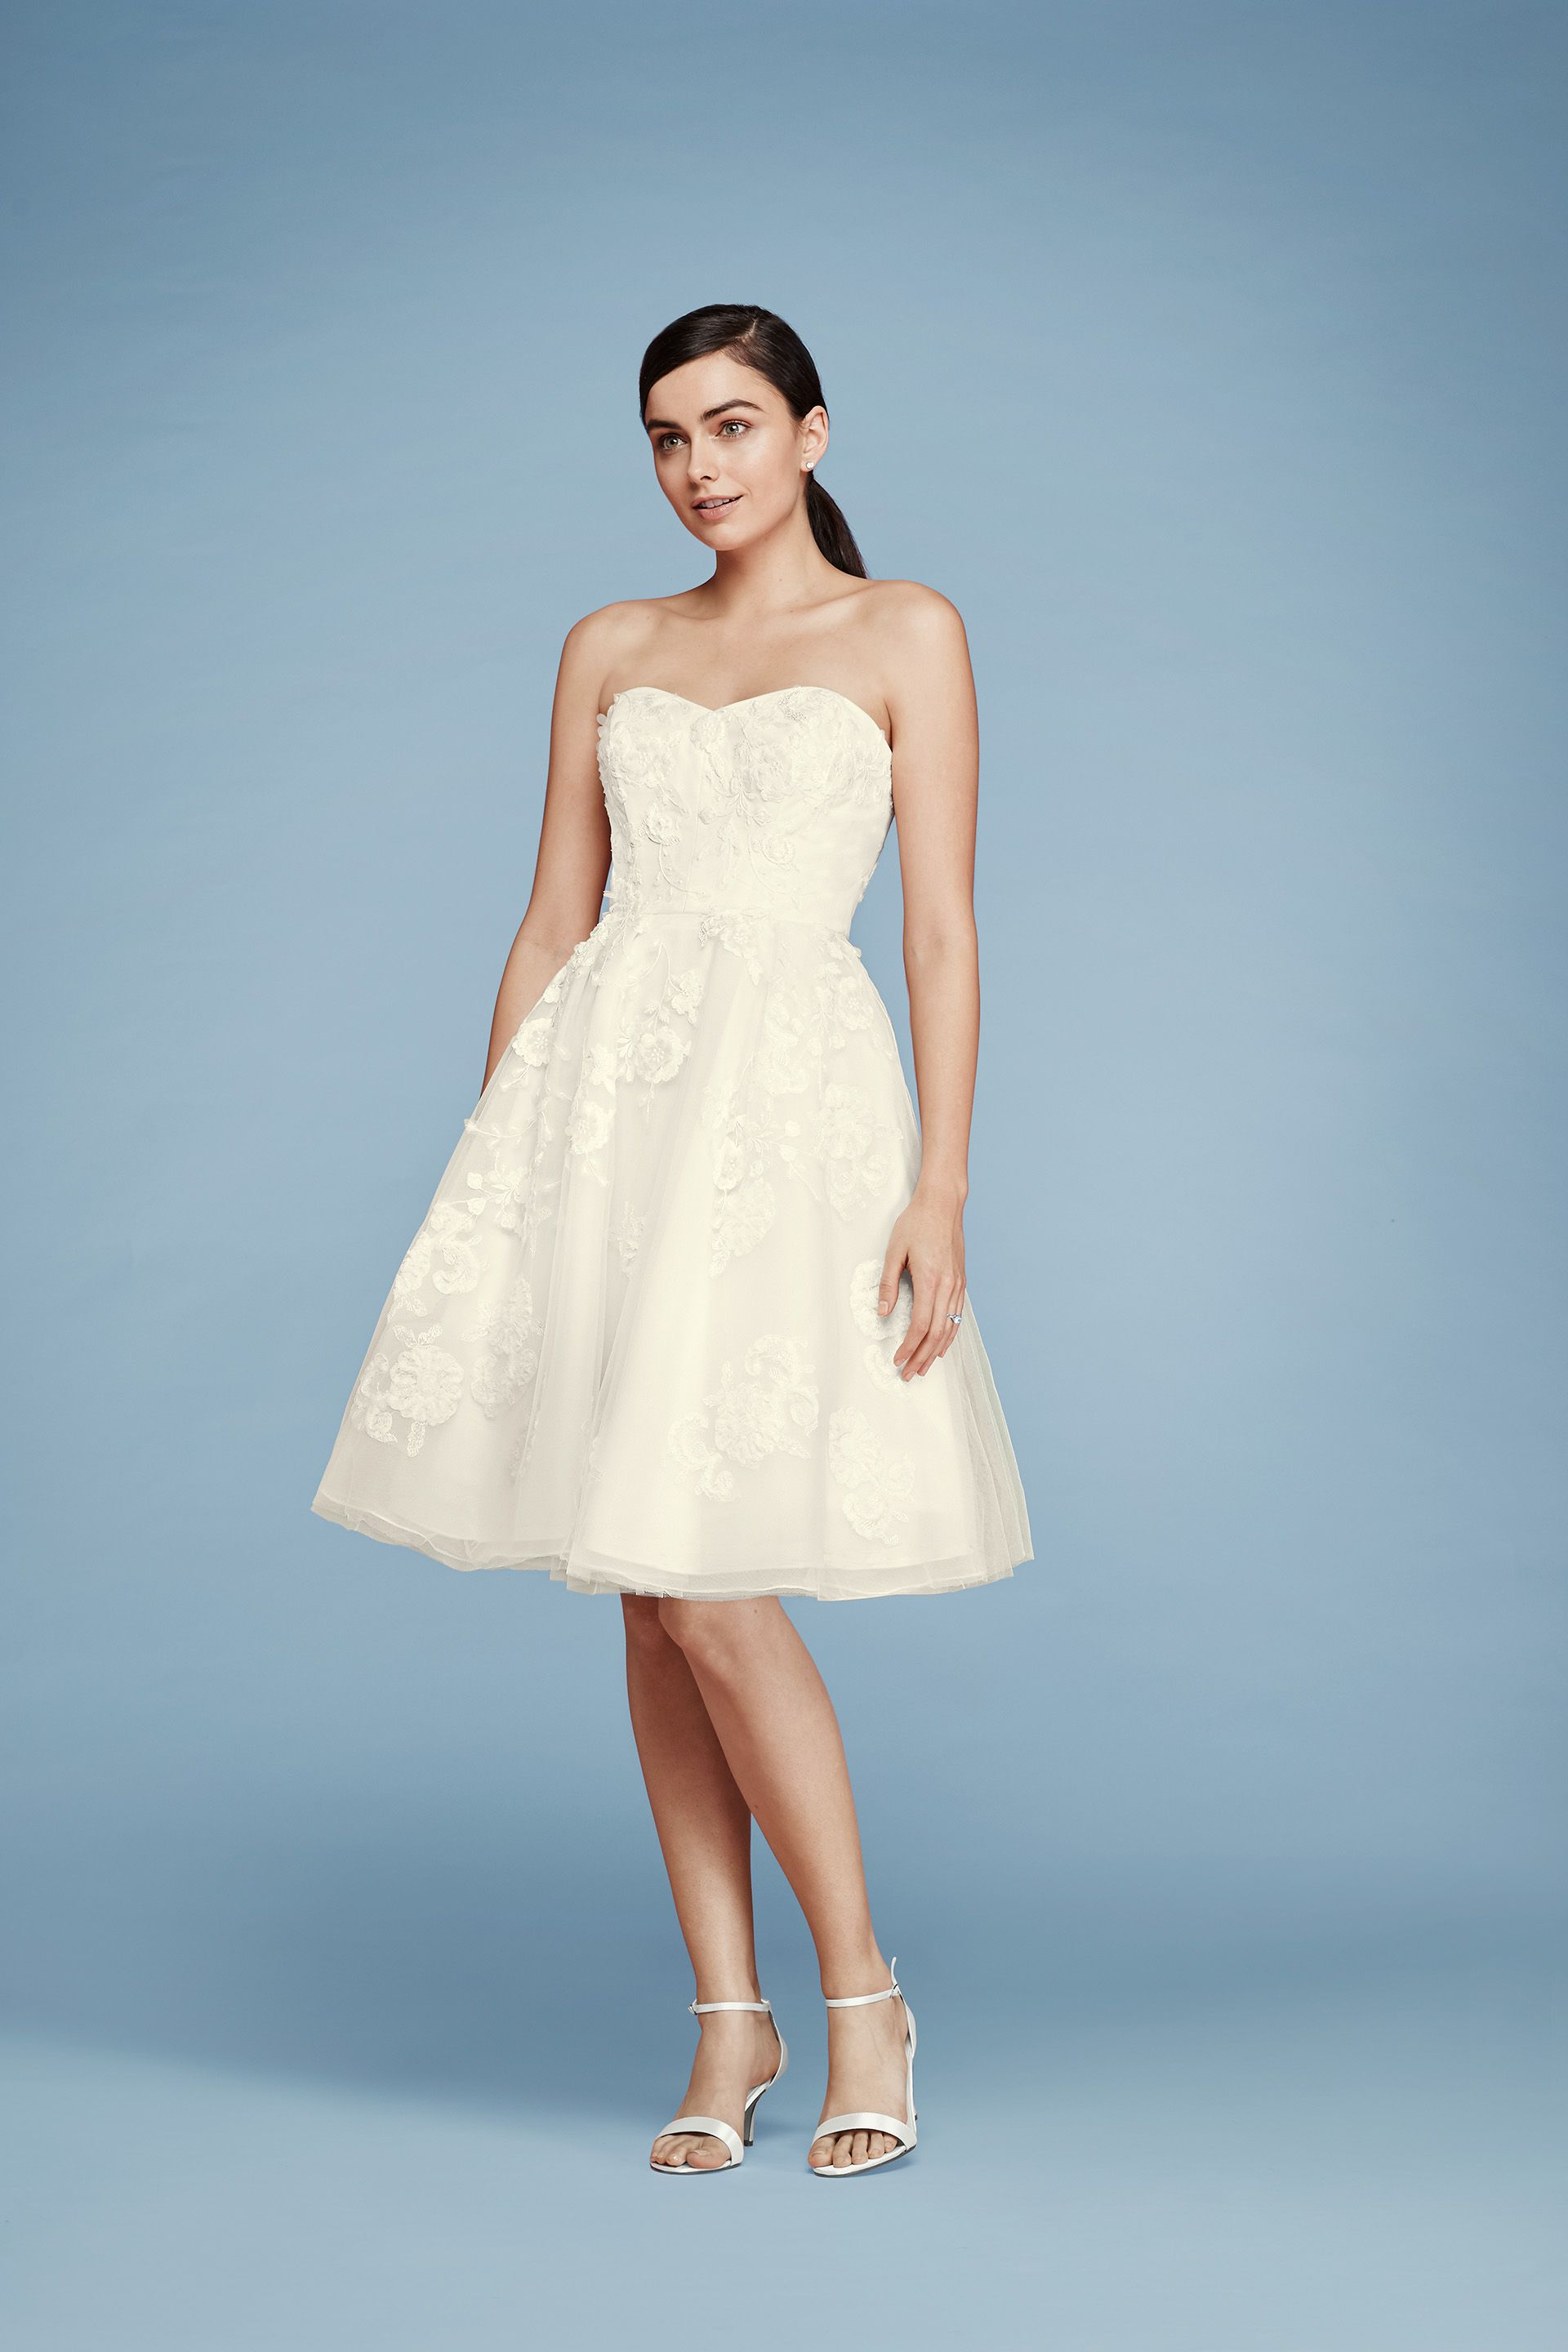 Cheers Cynthia Rowley Short Lace Strapless Wedding Dress | Casual ...